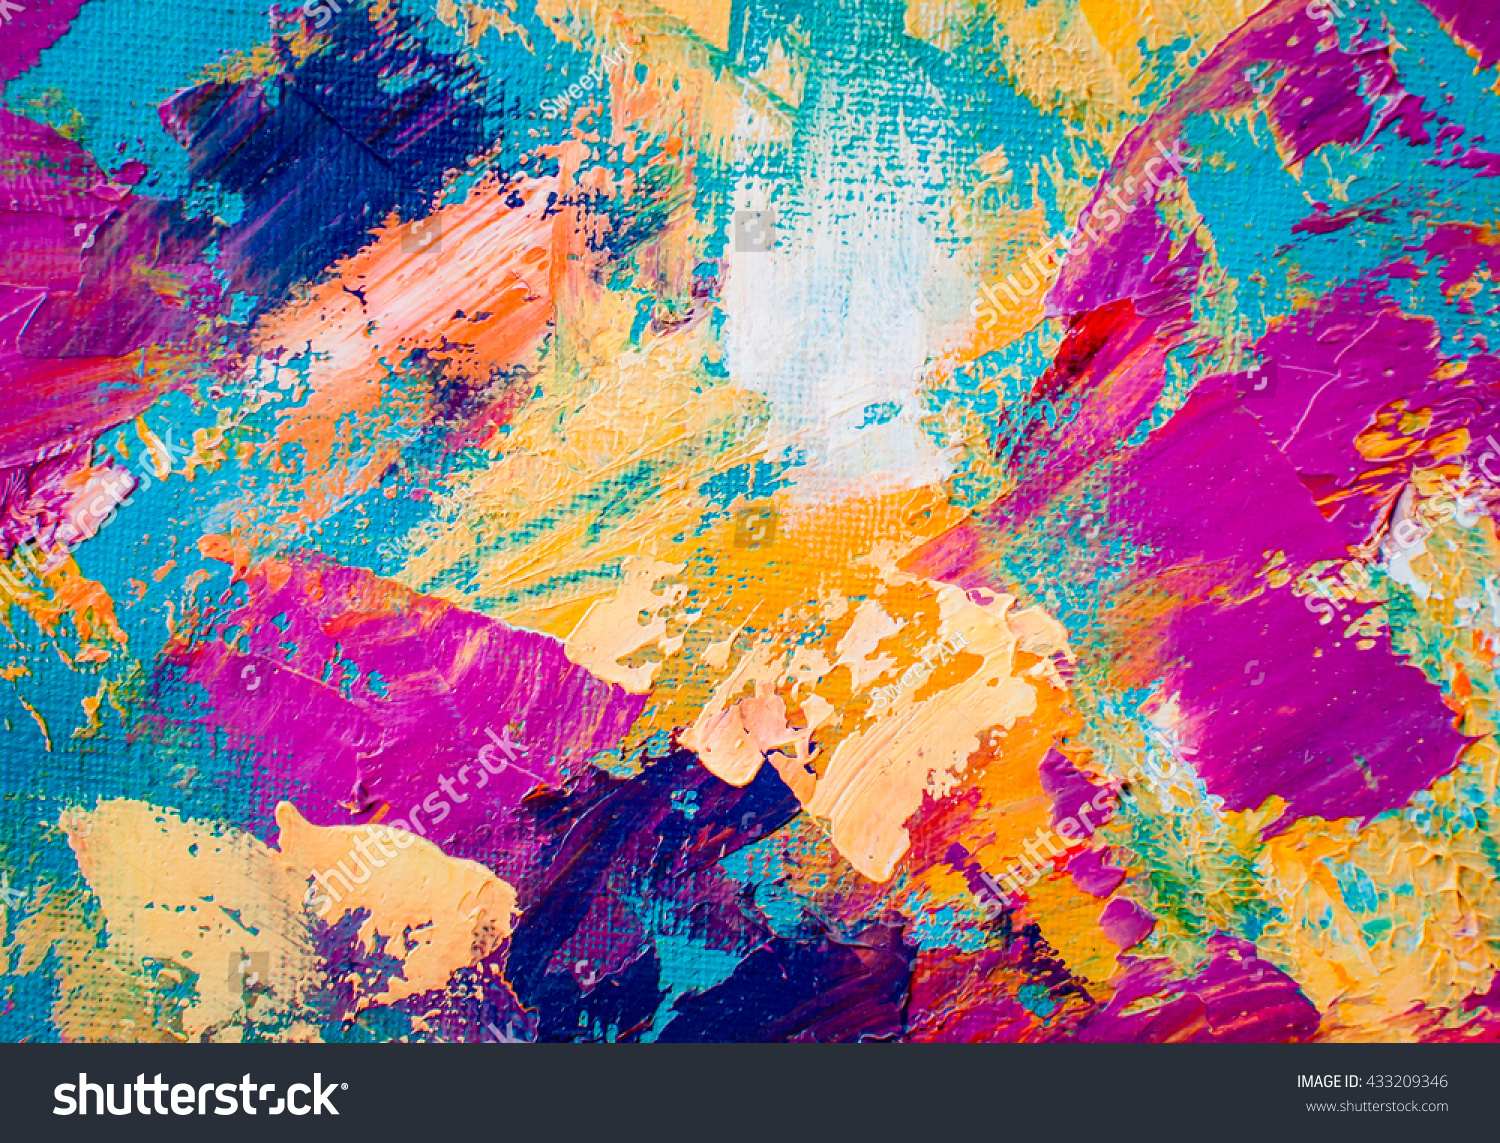 hand drawn oil painting abstract art stock illustration 433209346